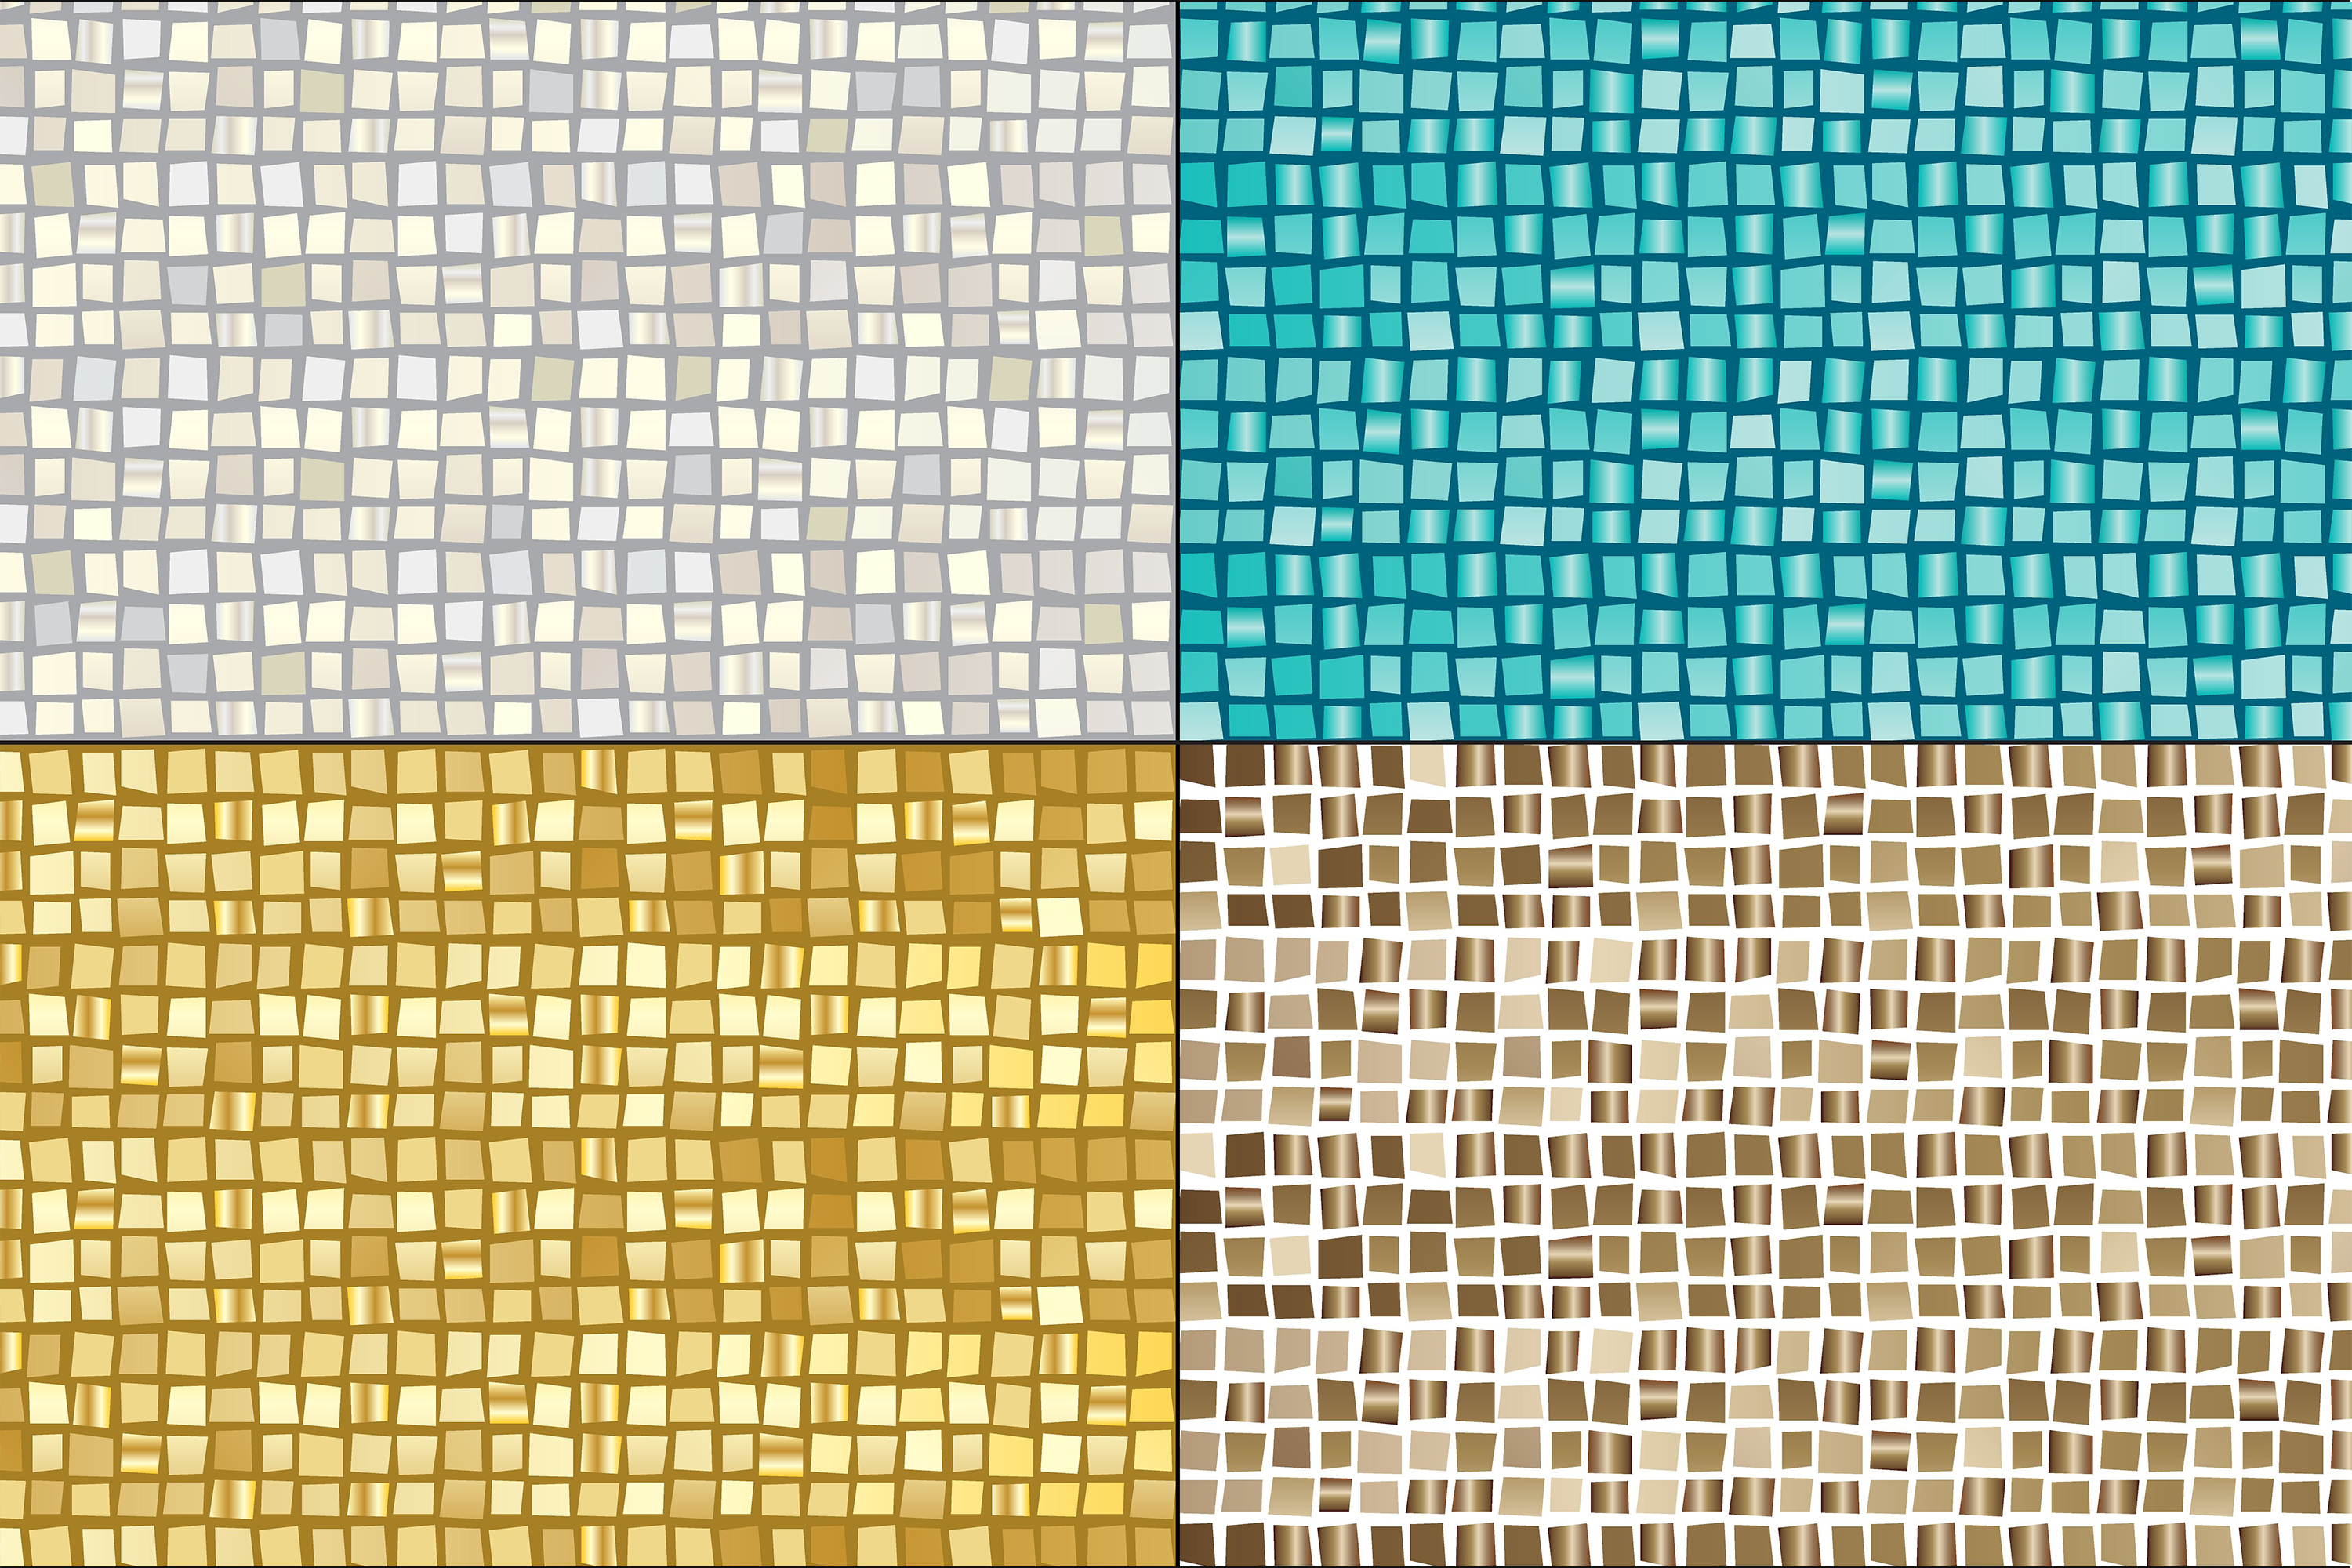 Mosaic Textures example image 3